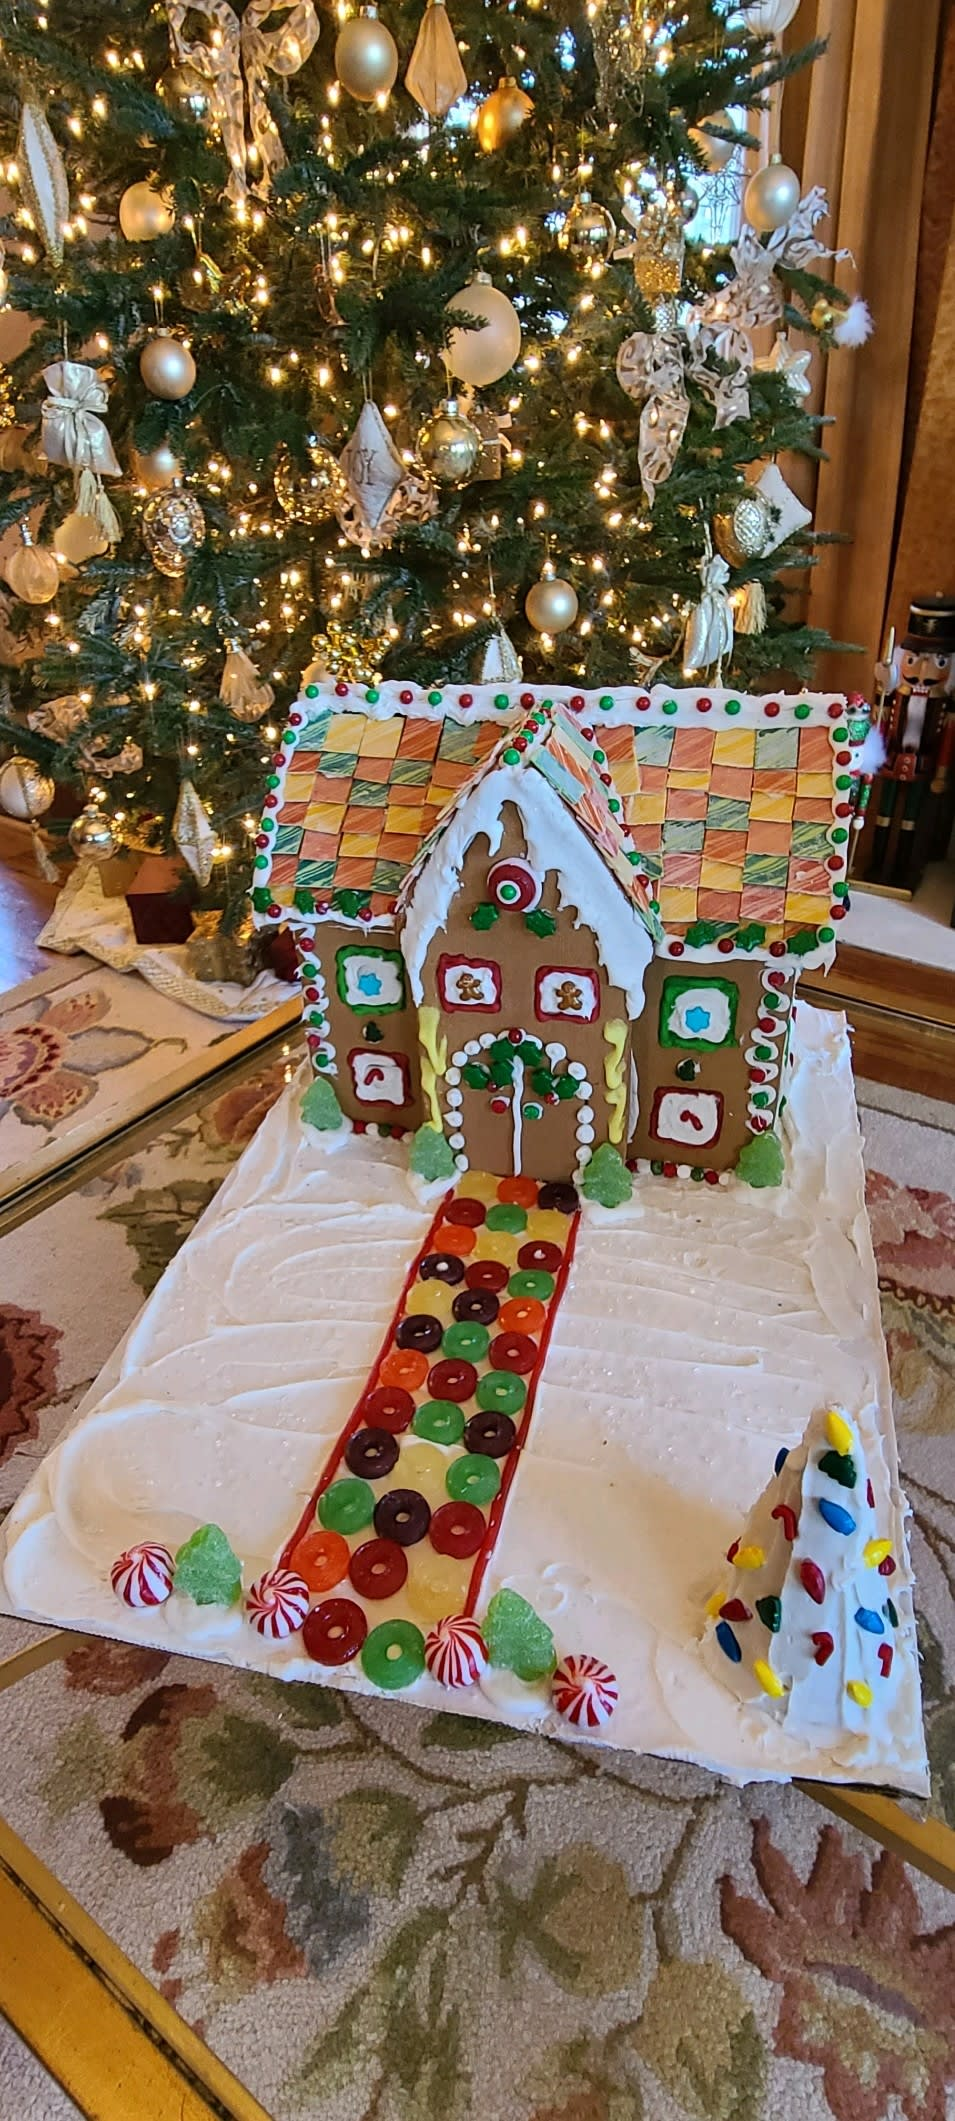 When Gingerbread Houses Go Virtual